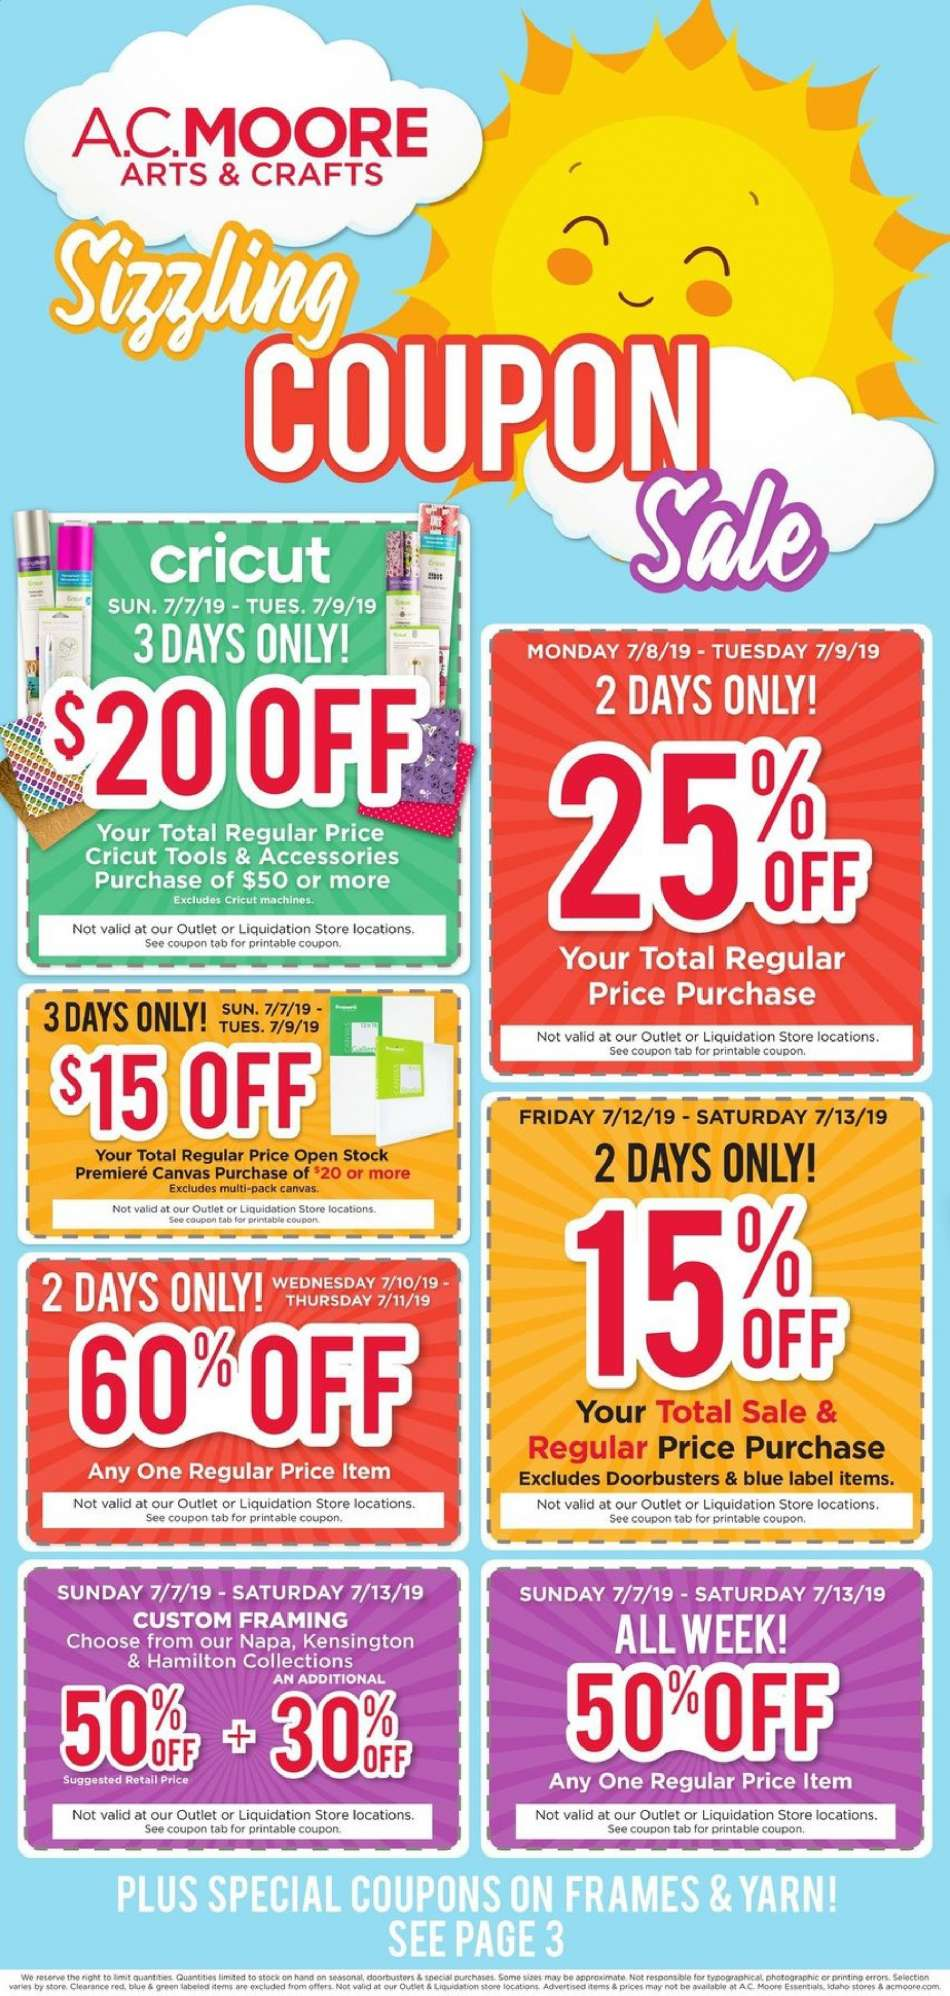 picture relating to Ac Moore Printable Coupons named A.C. Moore flyer 07.07.2019 - 07.13.2019